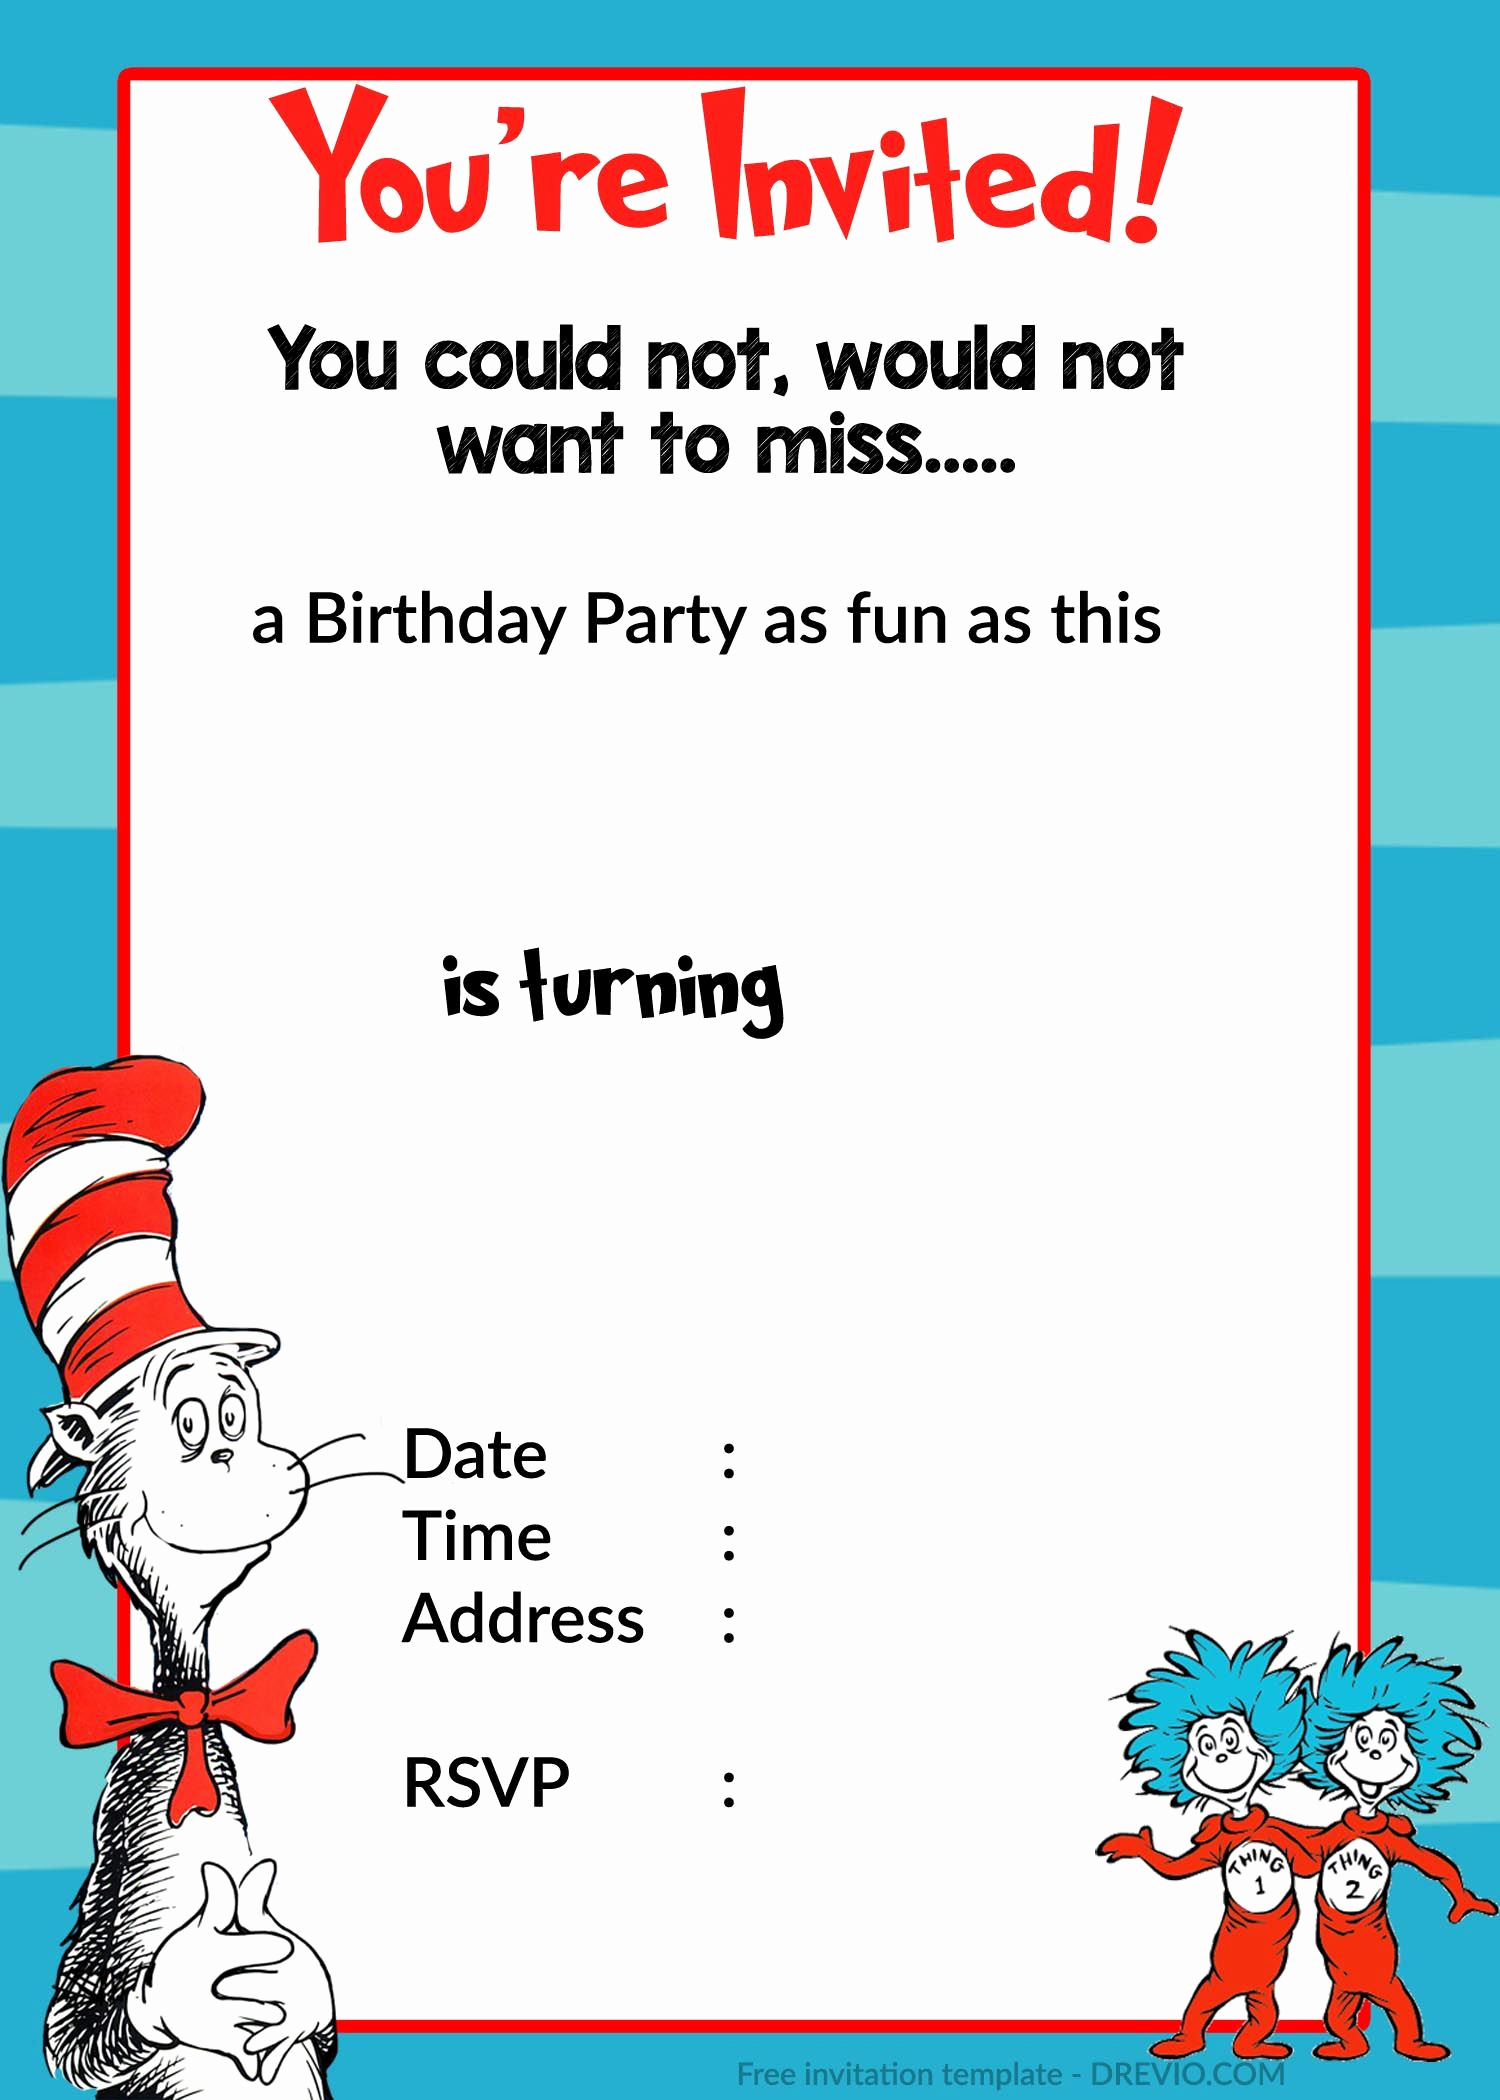 Dr Seuss Invitation Template Free Elegant Printable Dr Seuss Birthday